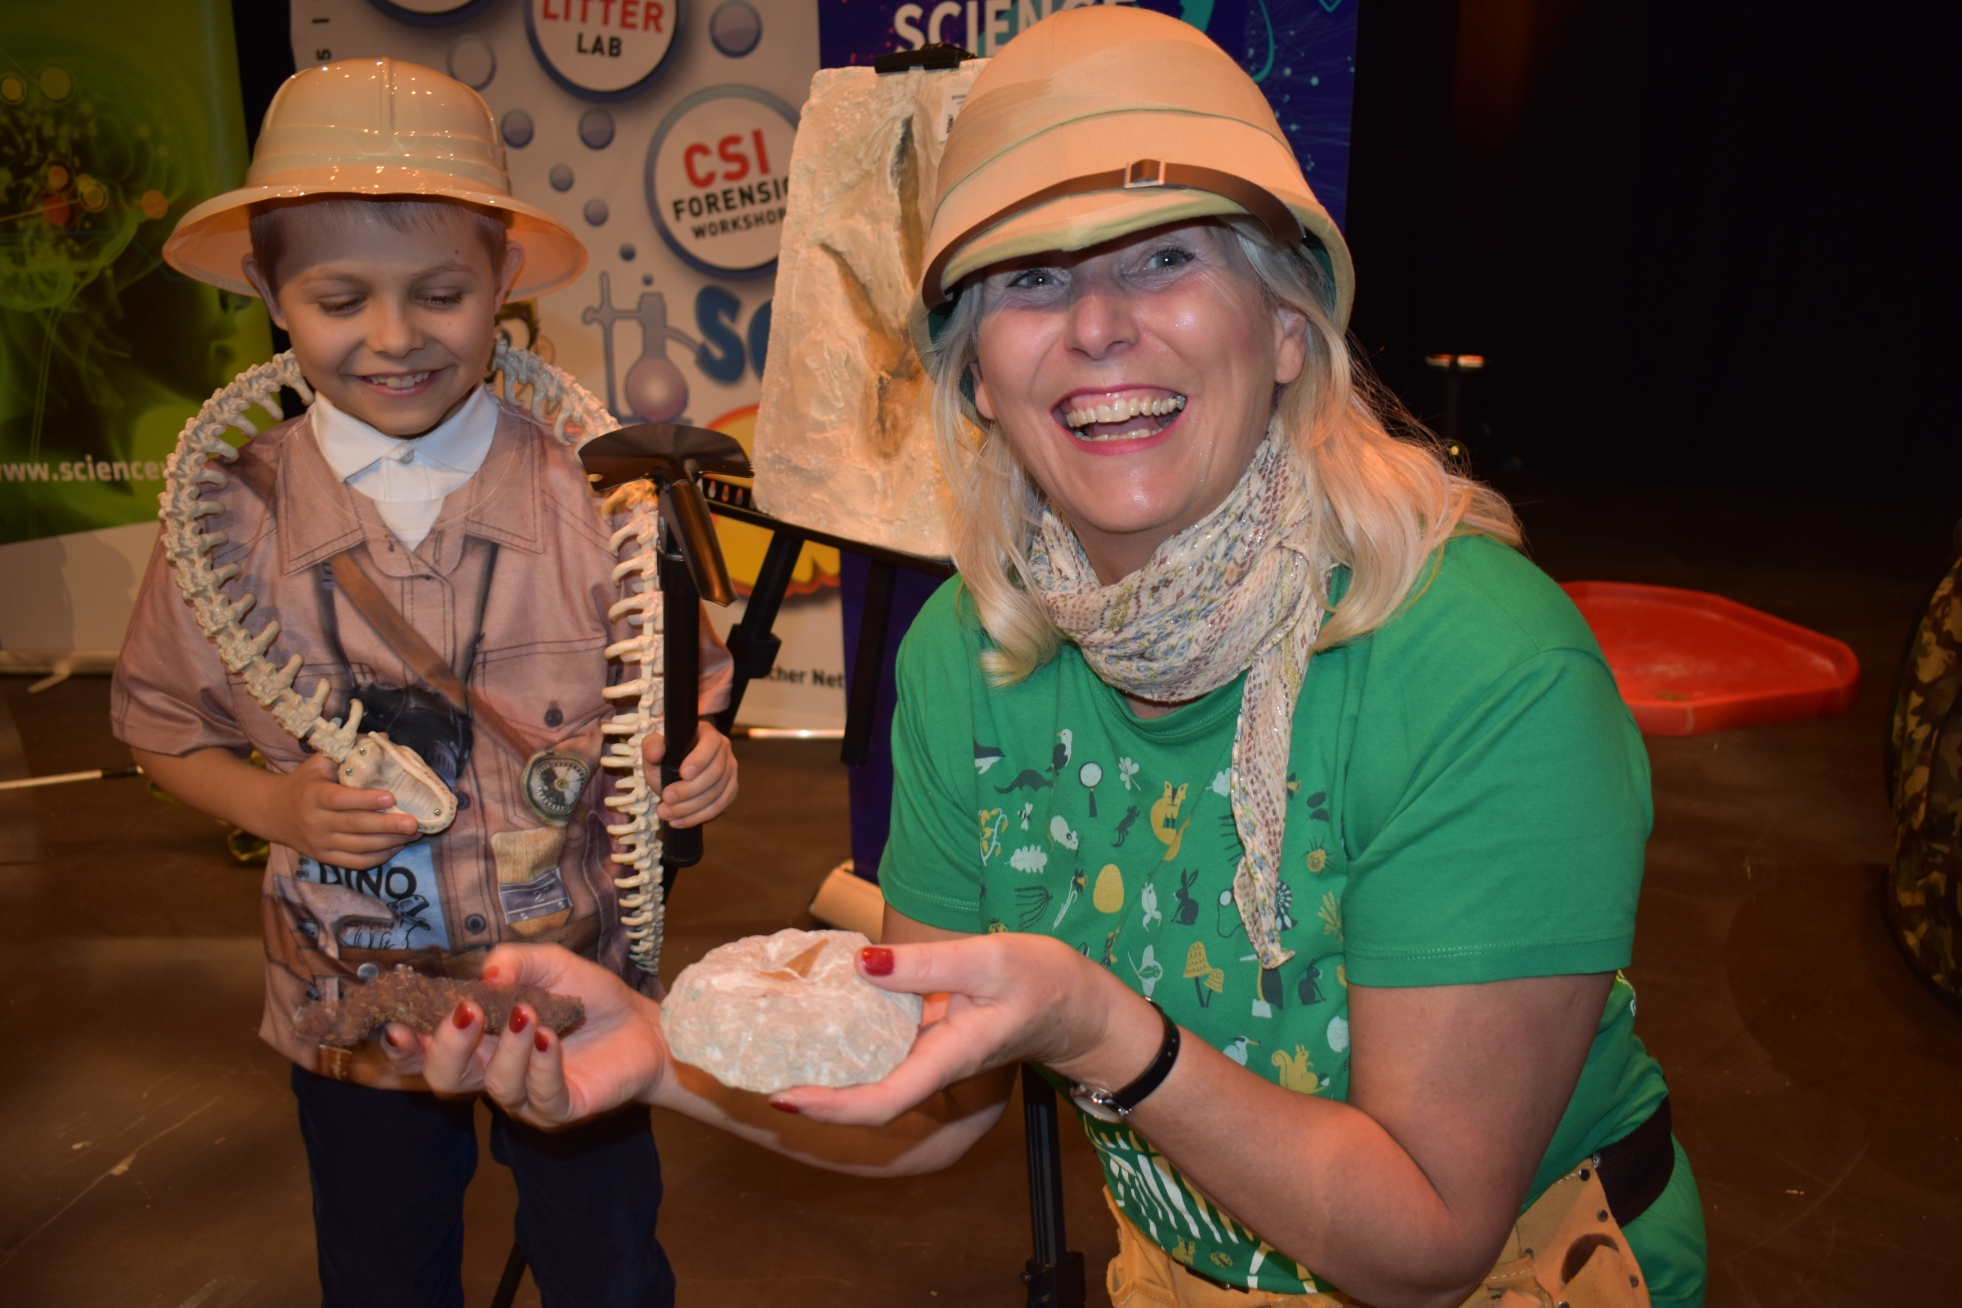 Limerick Festival of Science 2019